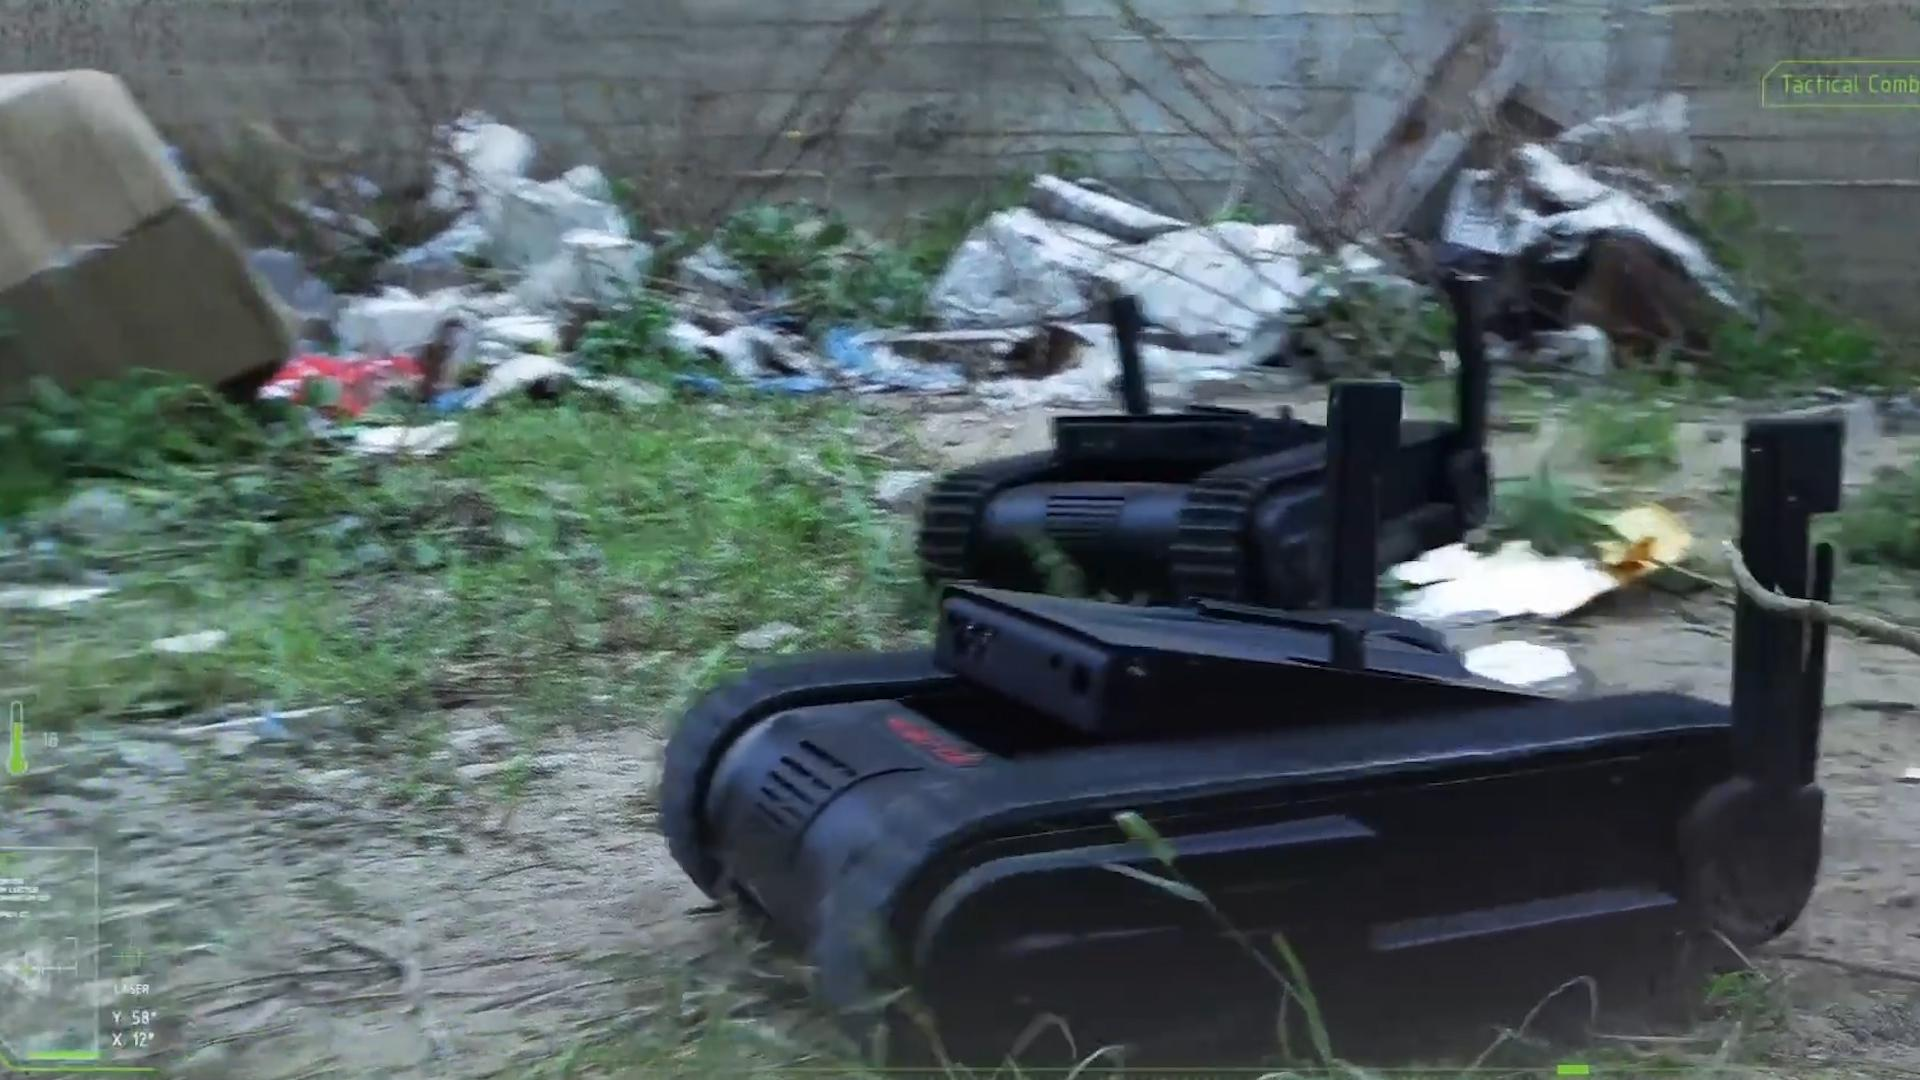 This tactical robot carries a Glock